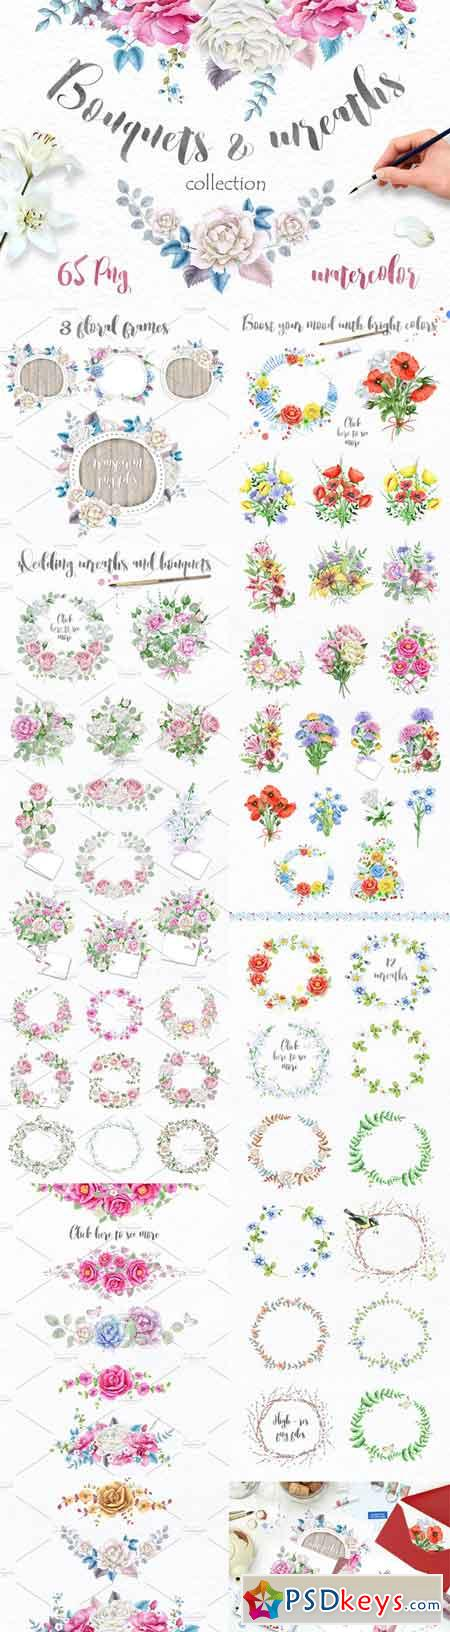 Wreaths and Bouquets collection 683319